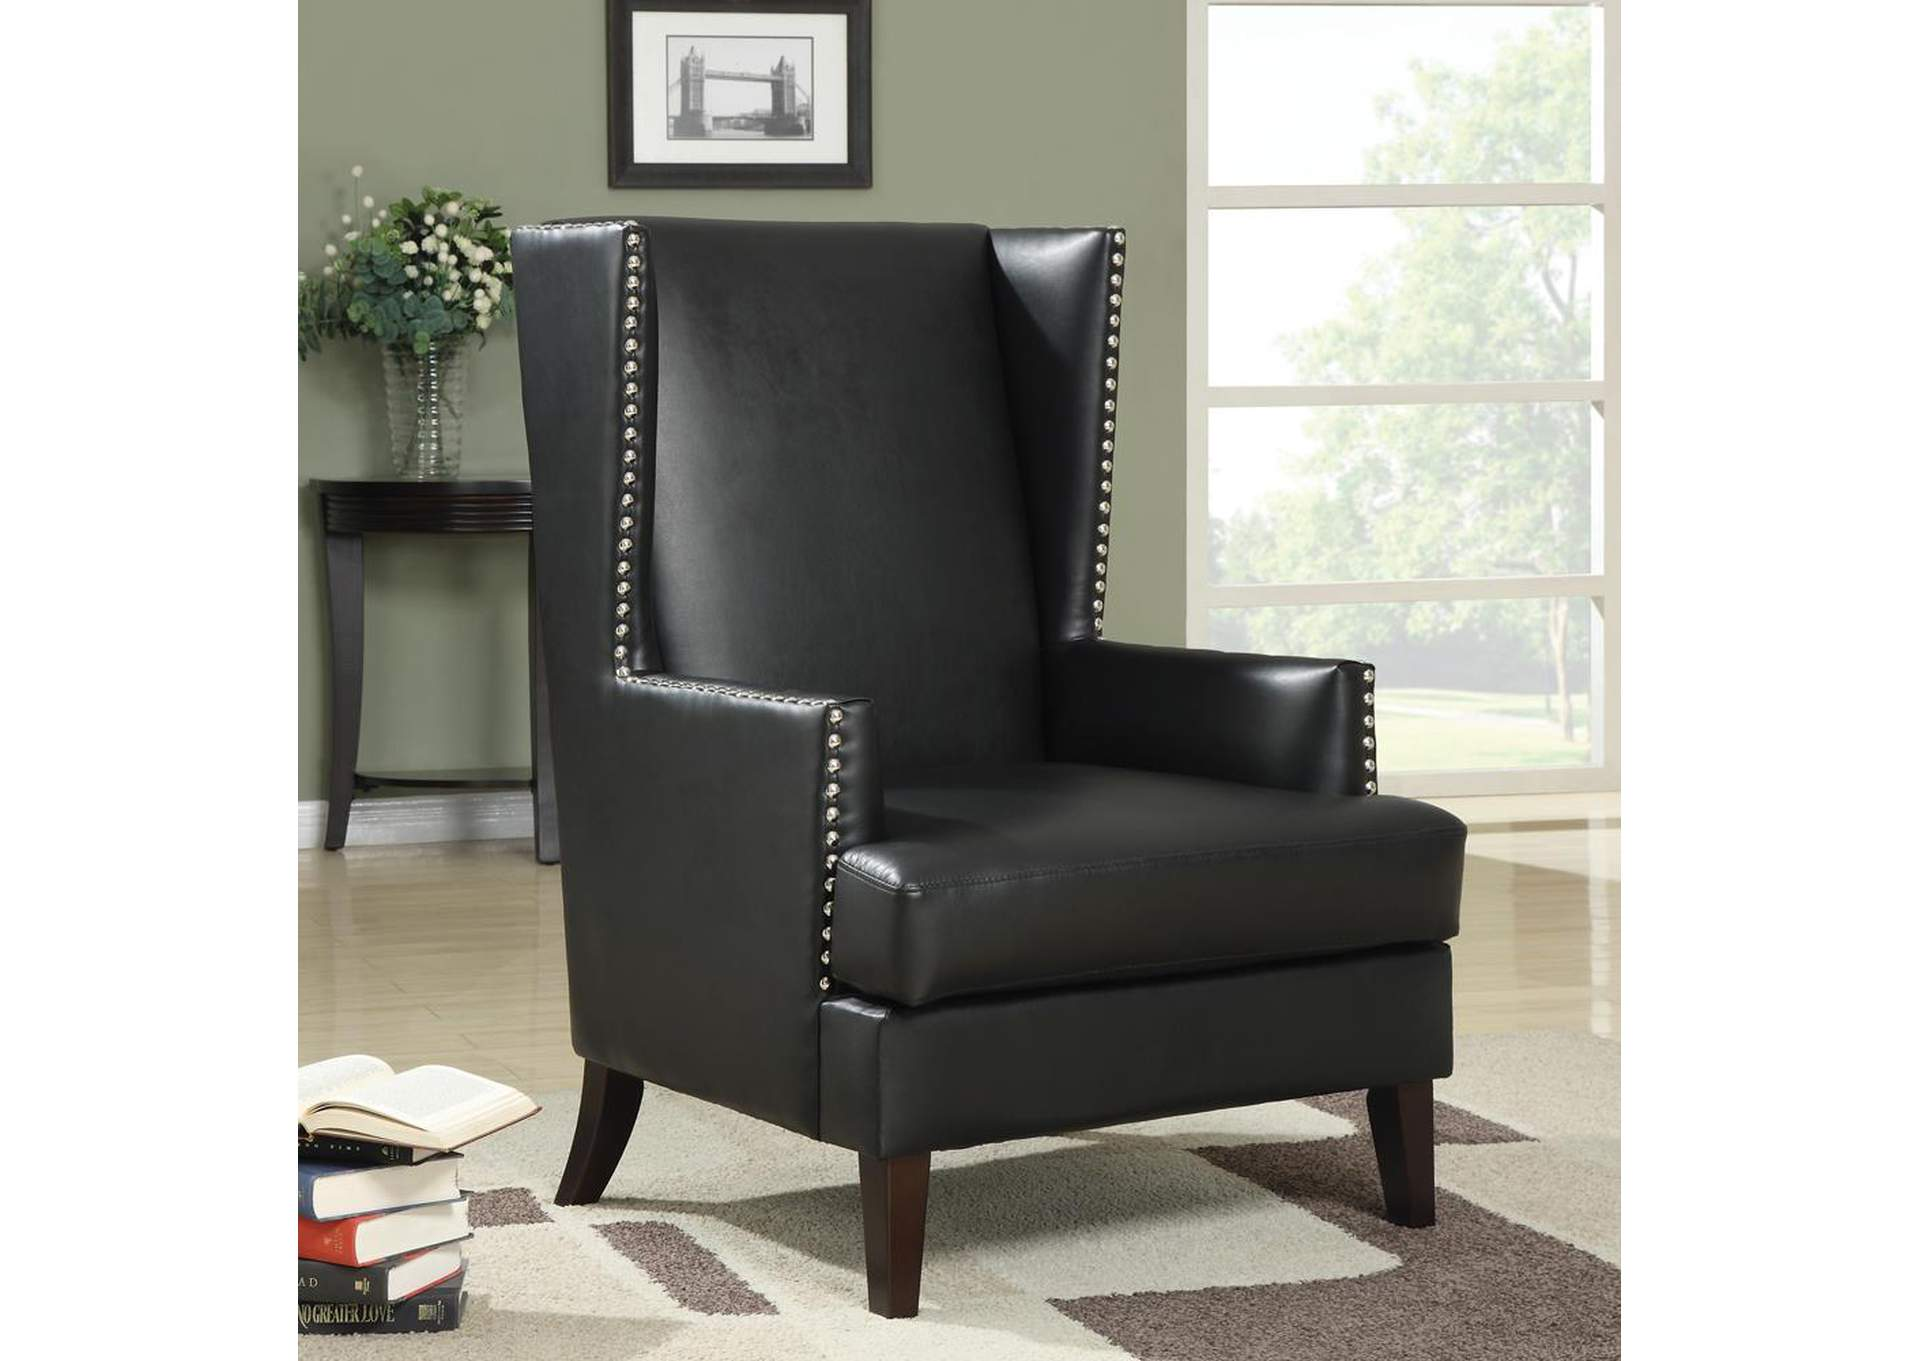 Vip Furniture Outlet Upper Darby Pa Black Accent Chair